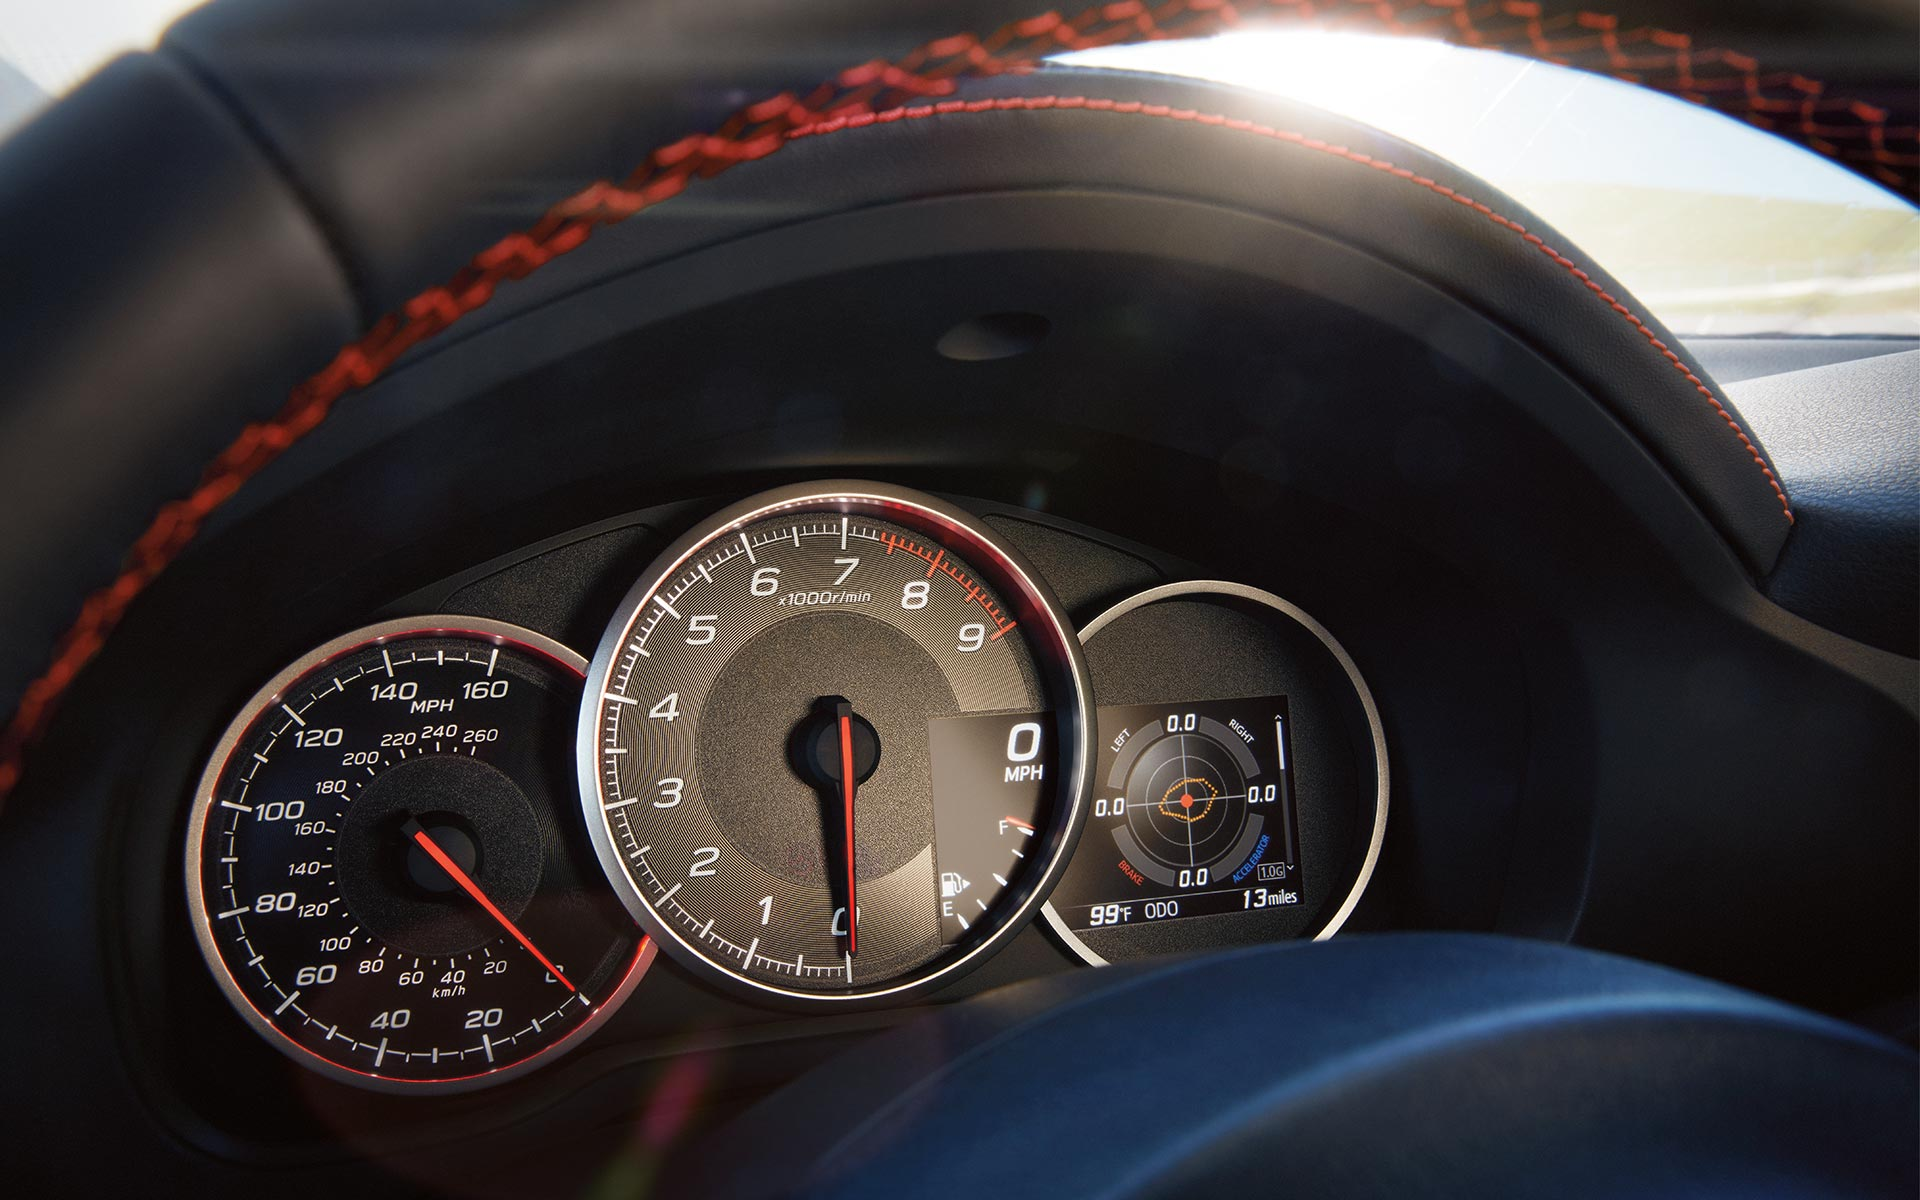 A close-up of the Multi-Function Display and instrument cluster in the 2020 BRZ.